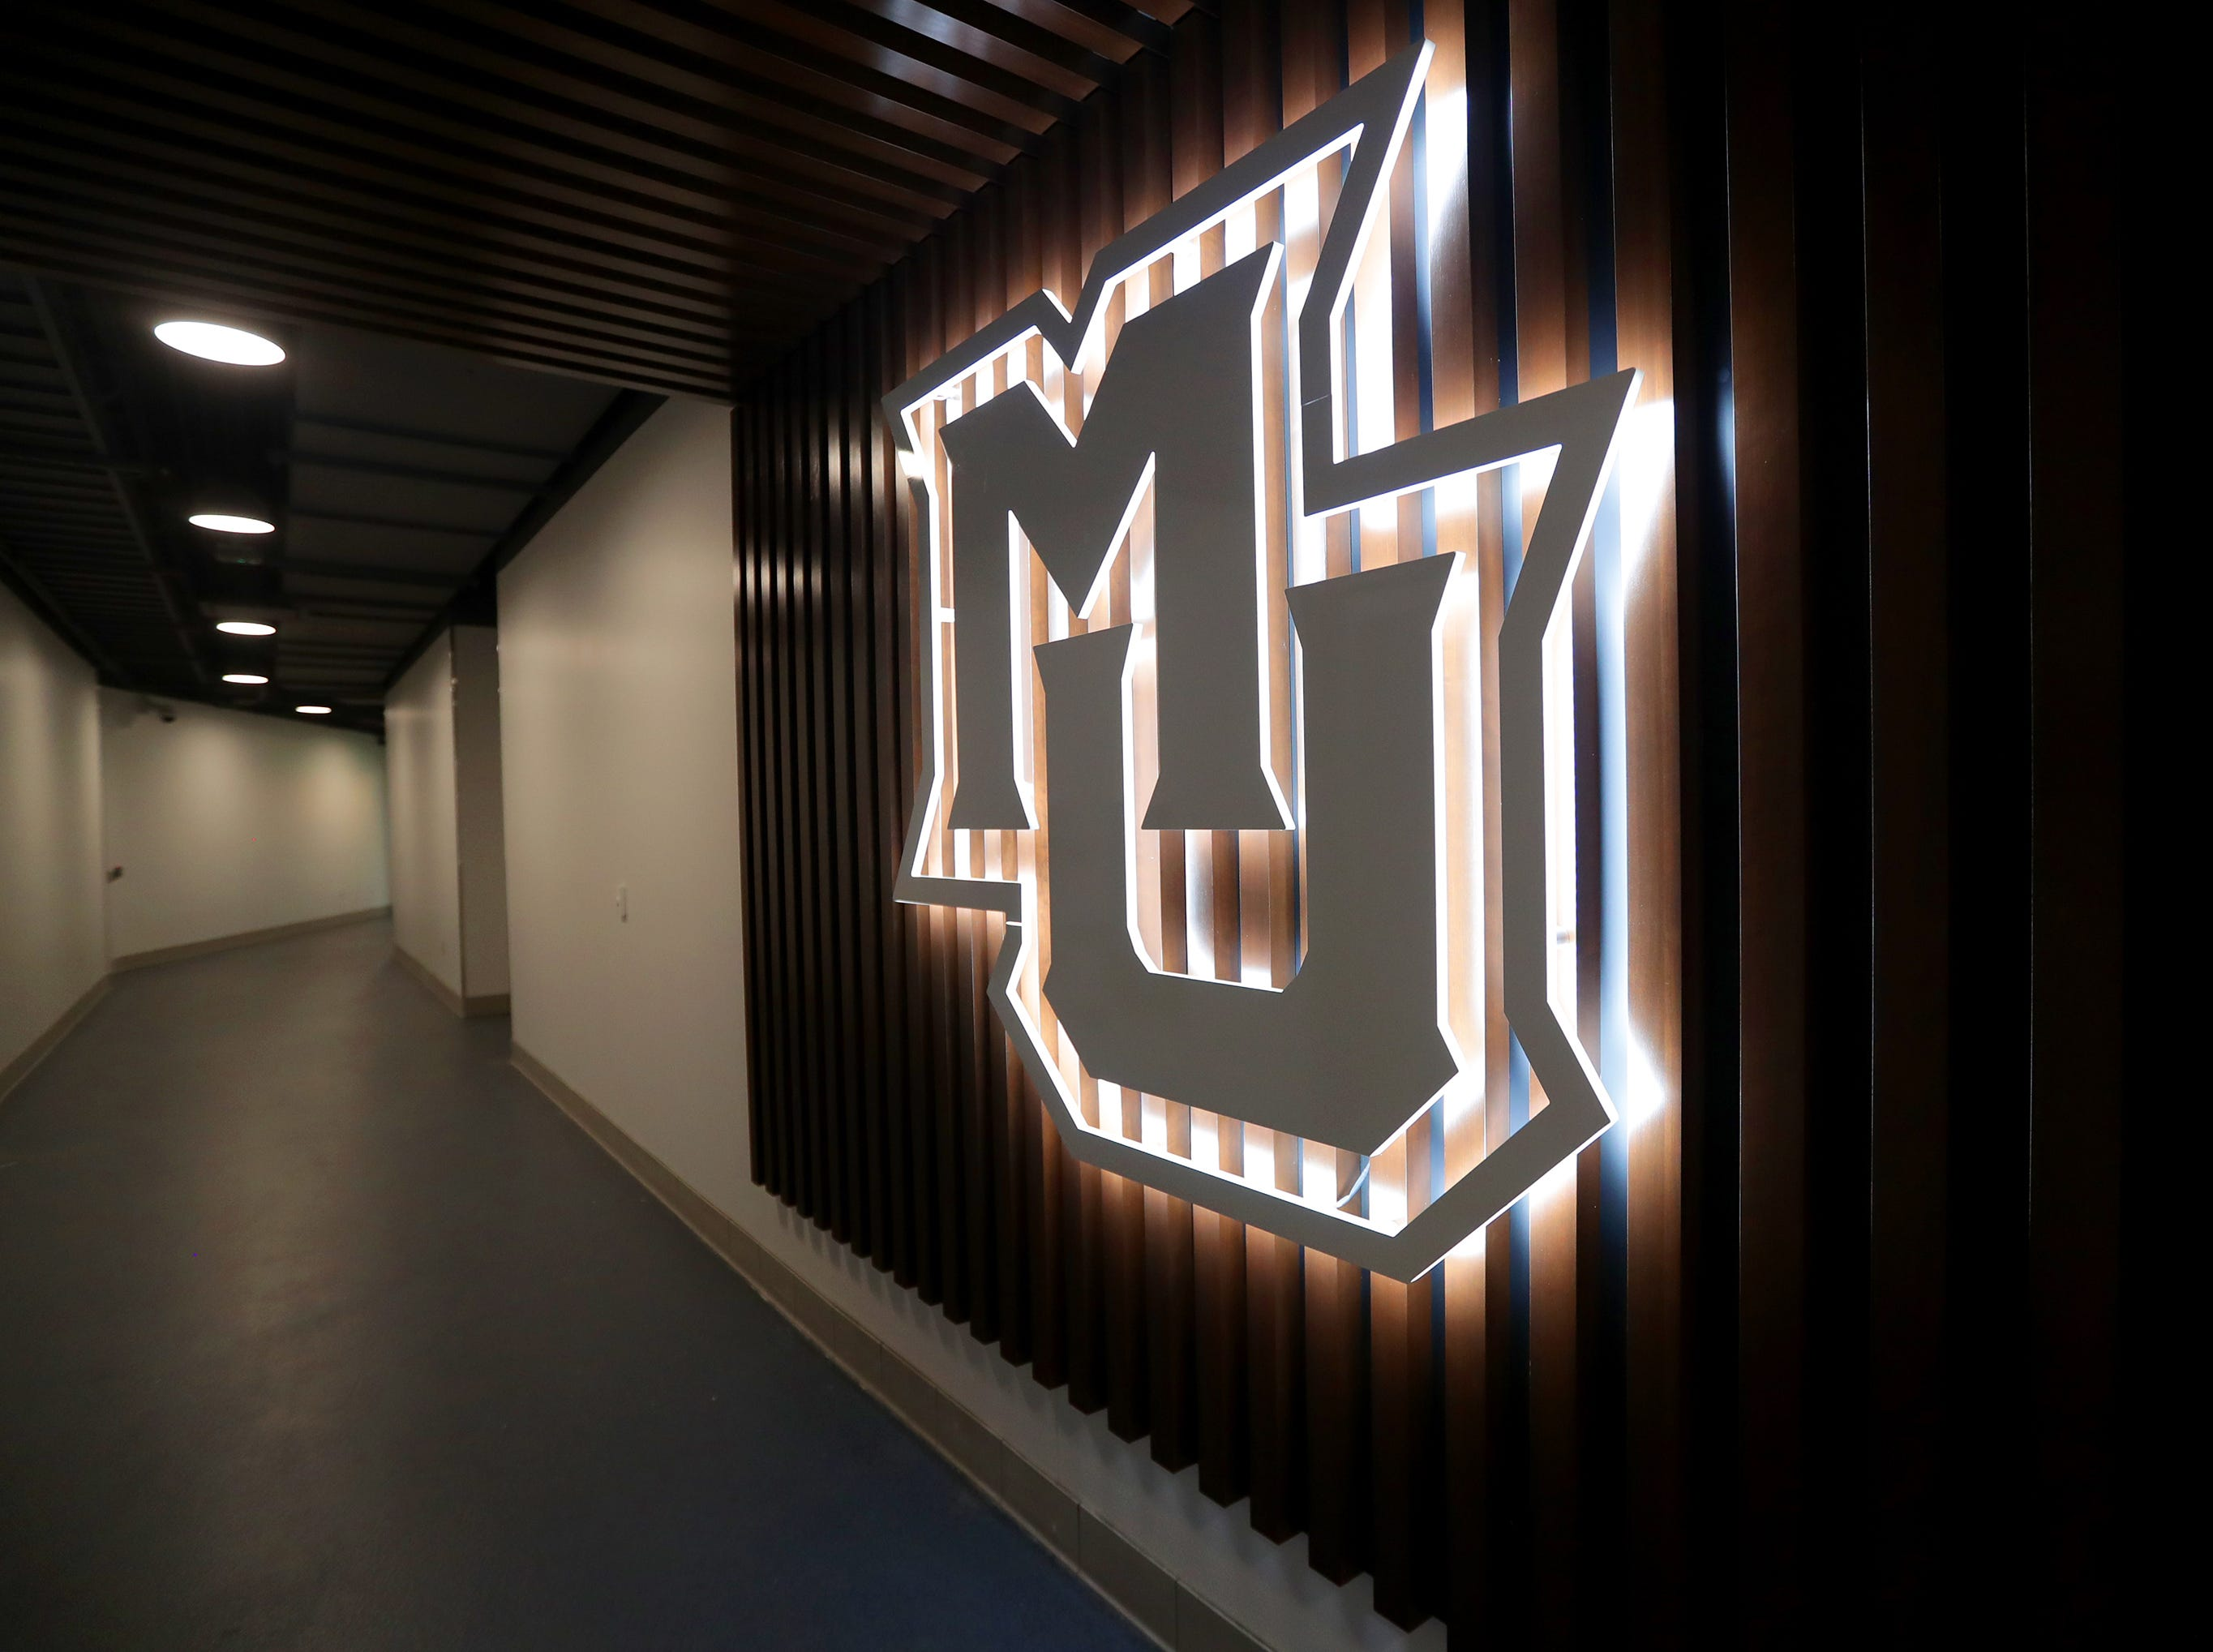 """A glowing """"MU"""" sign lights up the hallway outside the Marquette locker room. The Marquette mens' basketball team locker room is complete at the new Fiserve Forum, the home of the Milwaukee Bucks. Monday, August 27, 2018.  -  Photo by Mike De Sisti / Milwaukee Journal Sentinel"""